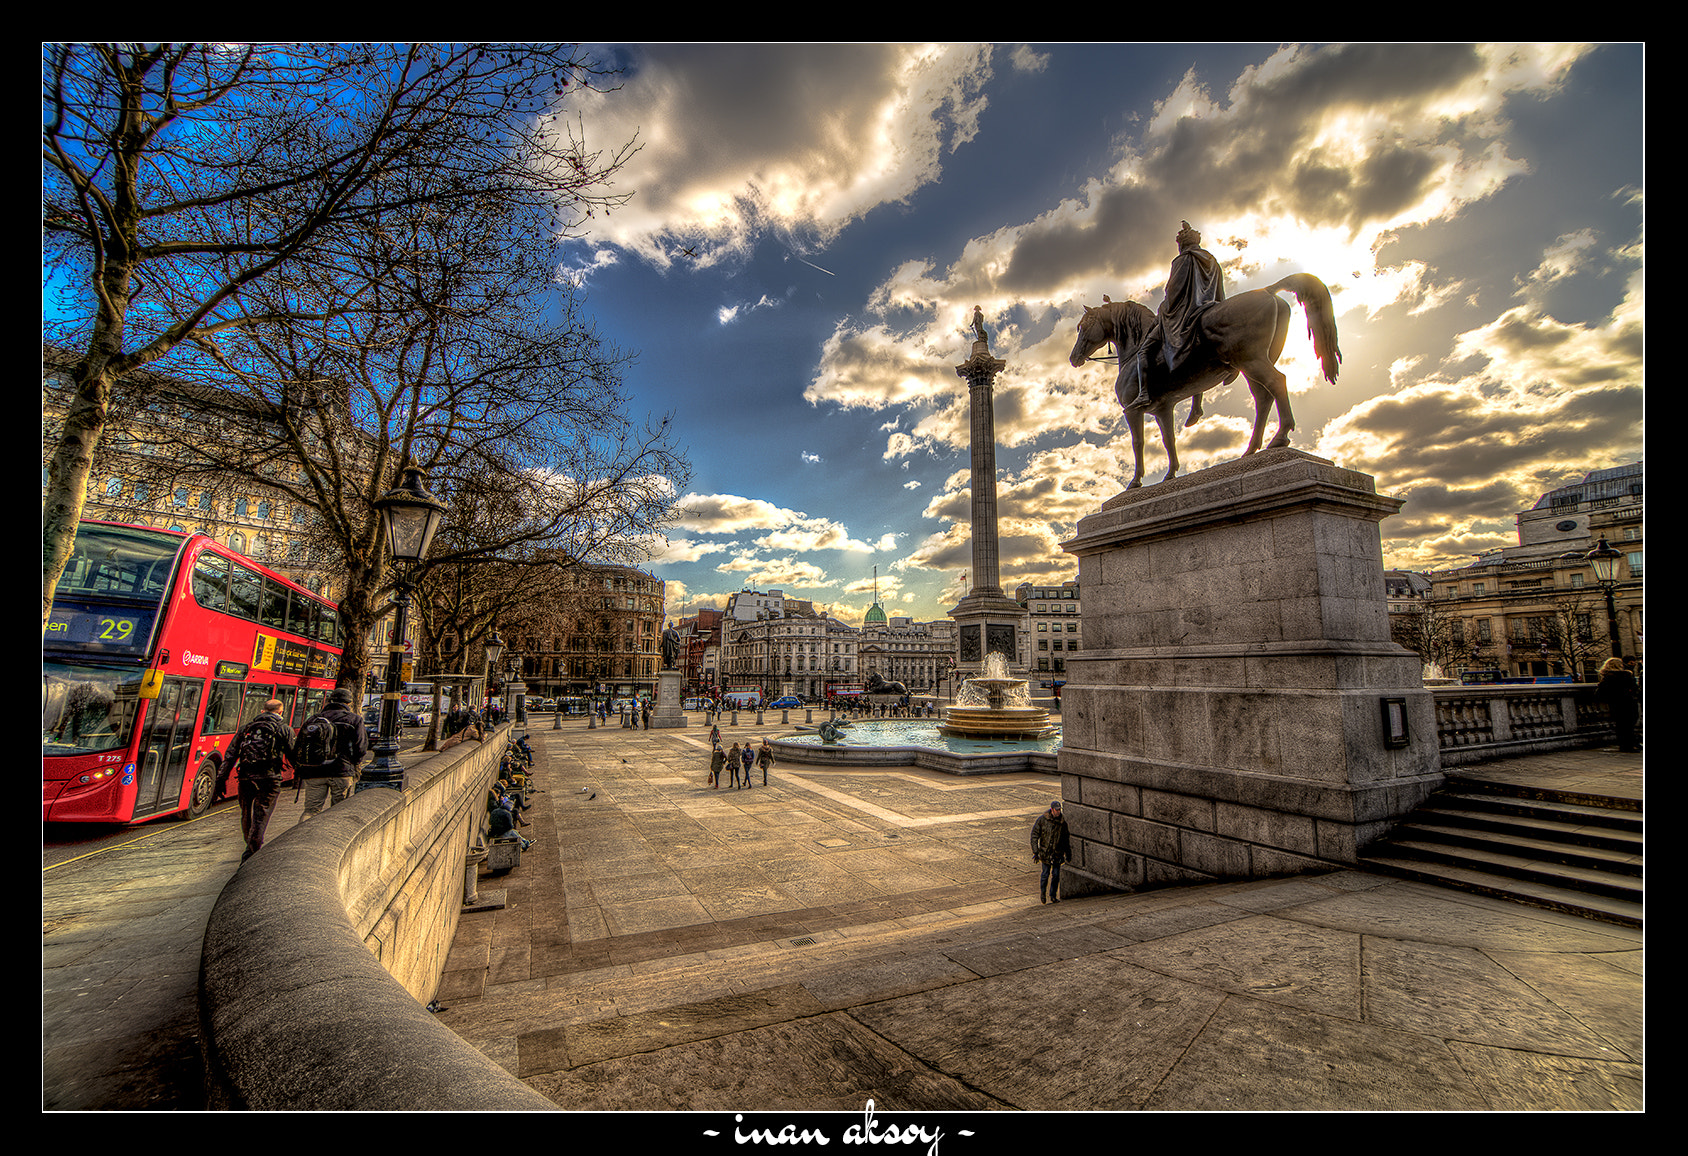 Photograph Trafalgar Square by Inan Aksoy on 500px